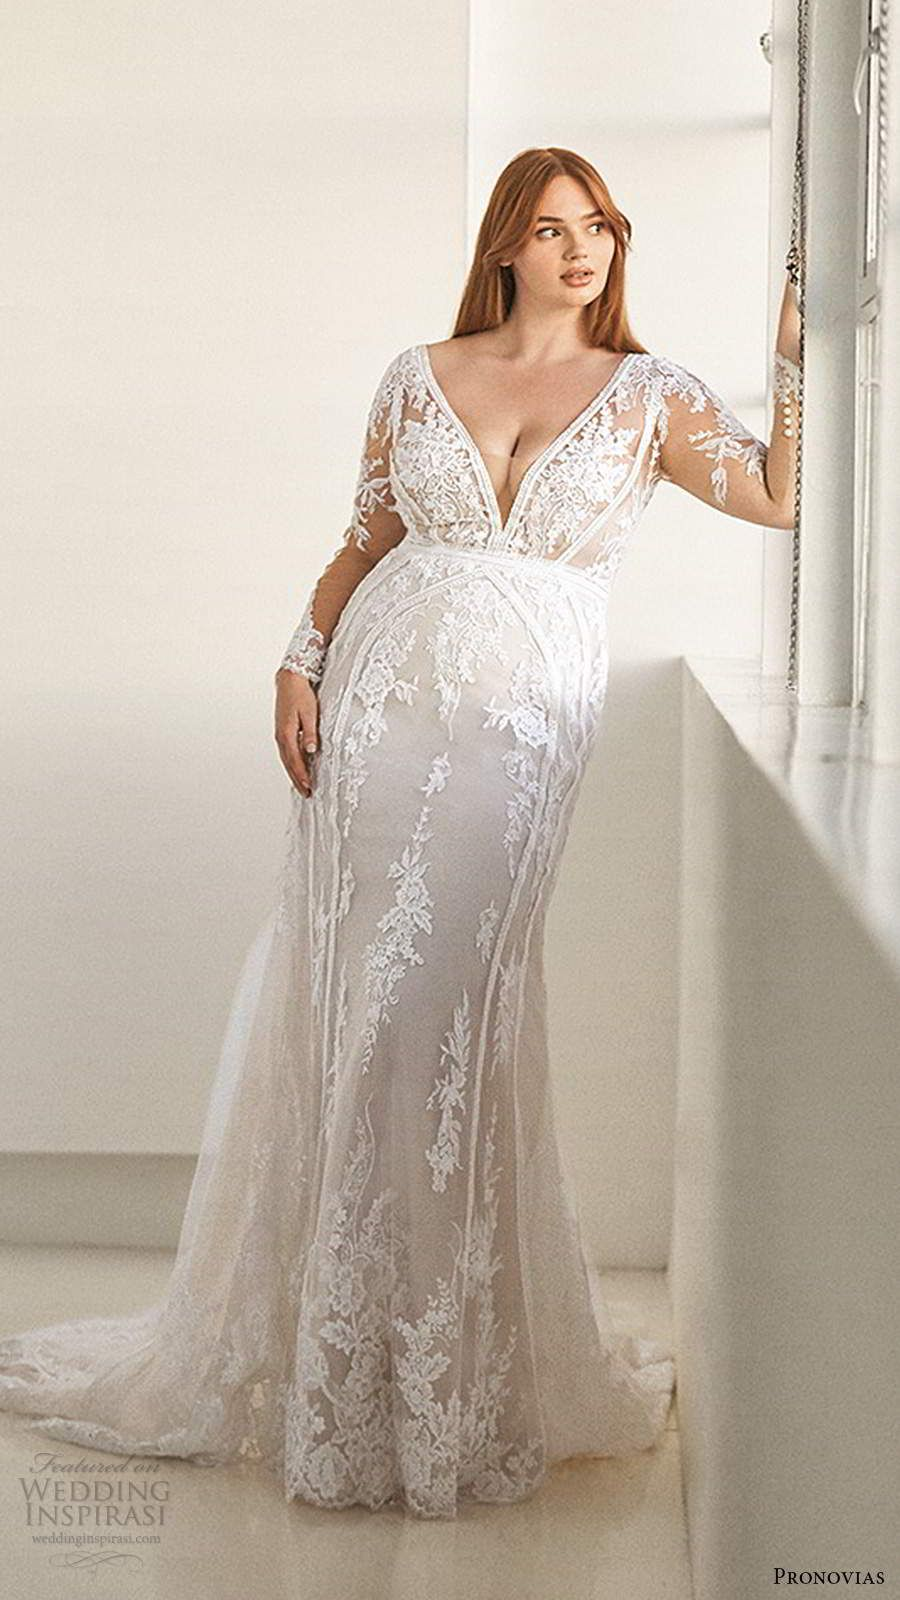 Ashley Graham X Pronovias 2020 Wedding Dresses A Gorgeous New Size Inclusive Bridal Collection Wedding Inspirasi Plus Wedding Dresses Wedding Dress Long Sleeve Fitted Wedding Dress [ 1600 x 900 Pixel ]